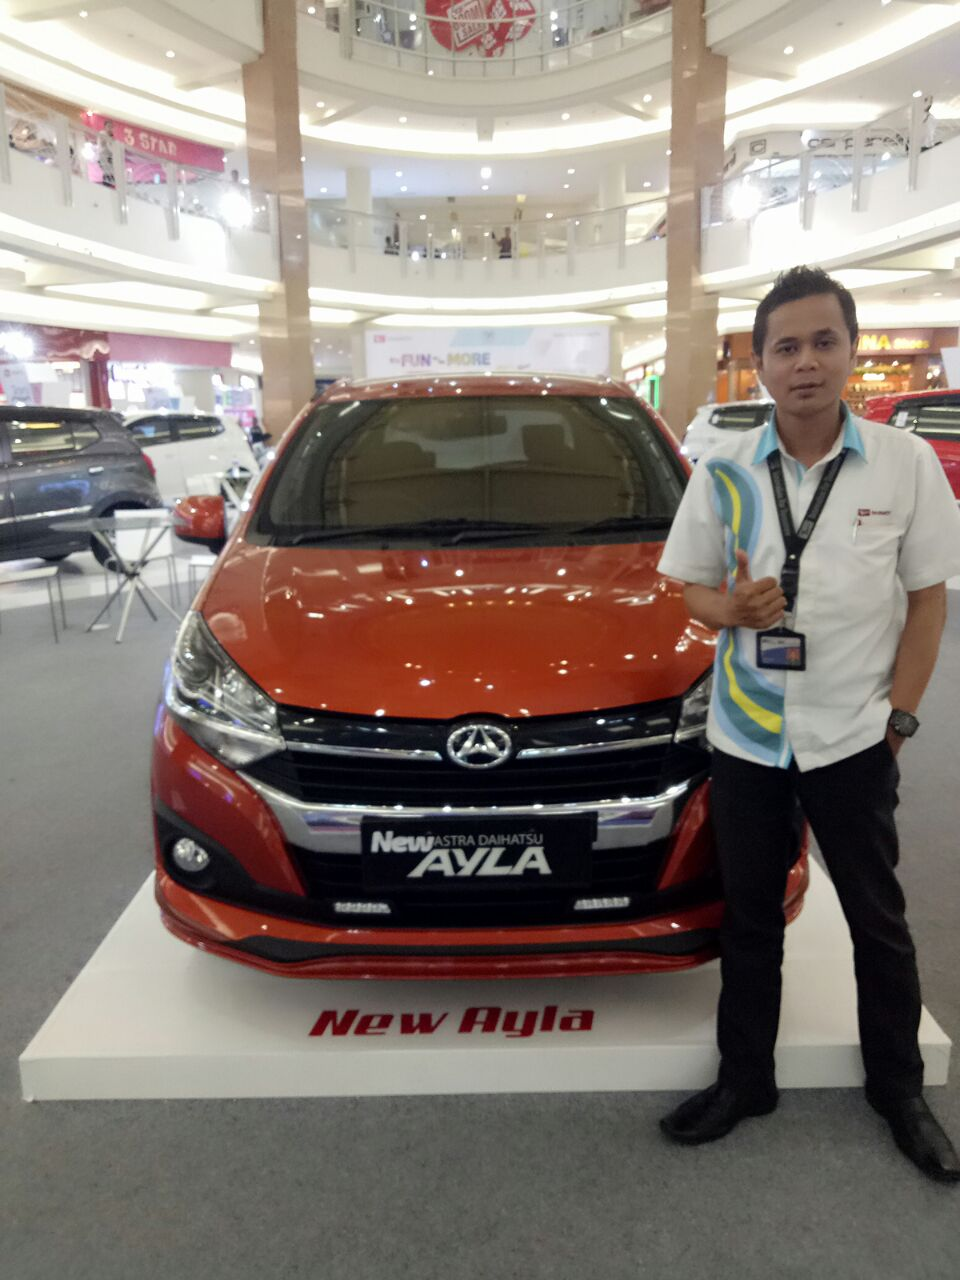 Sales Daihatsu Marketing Daihatsu Surabaya Eryk